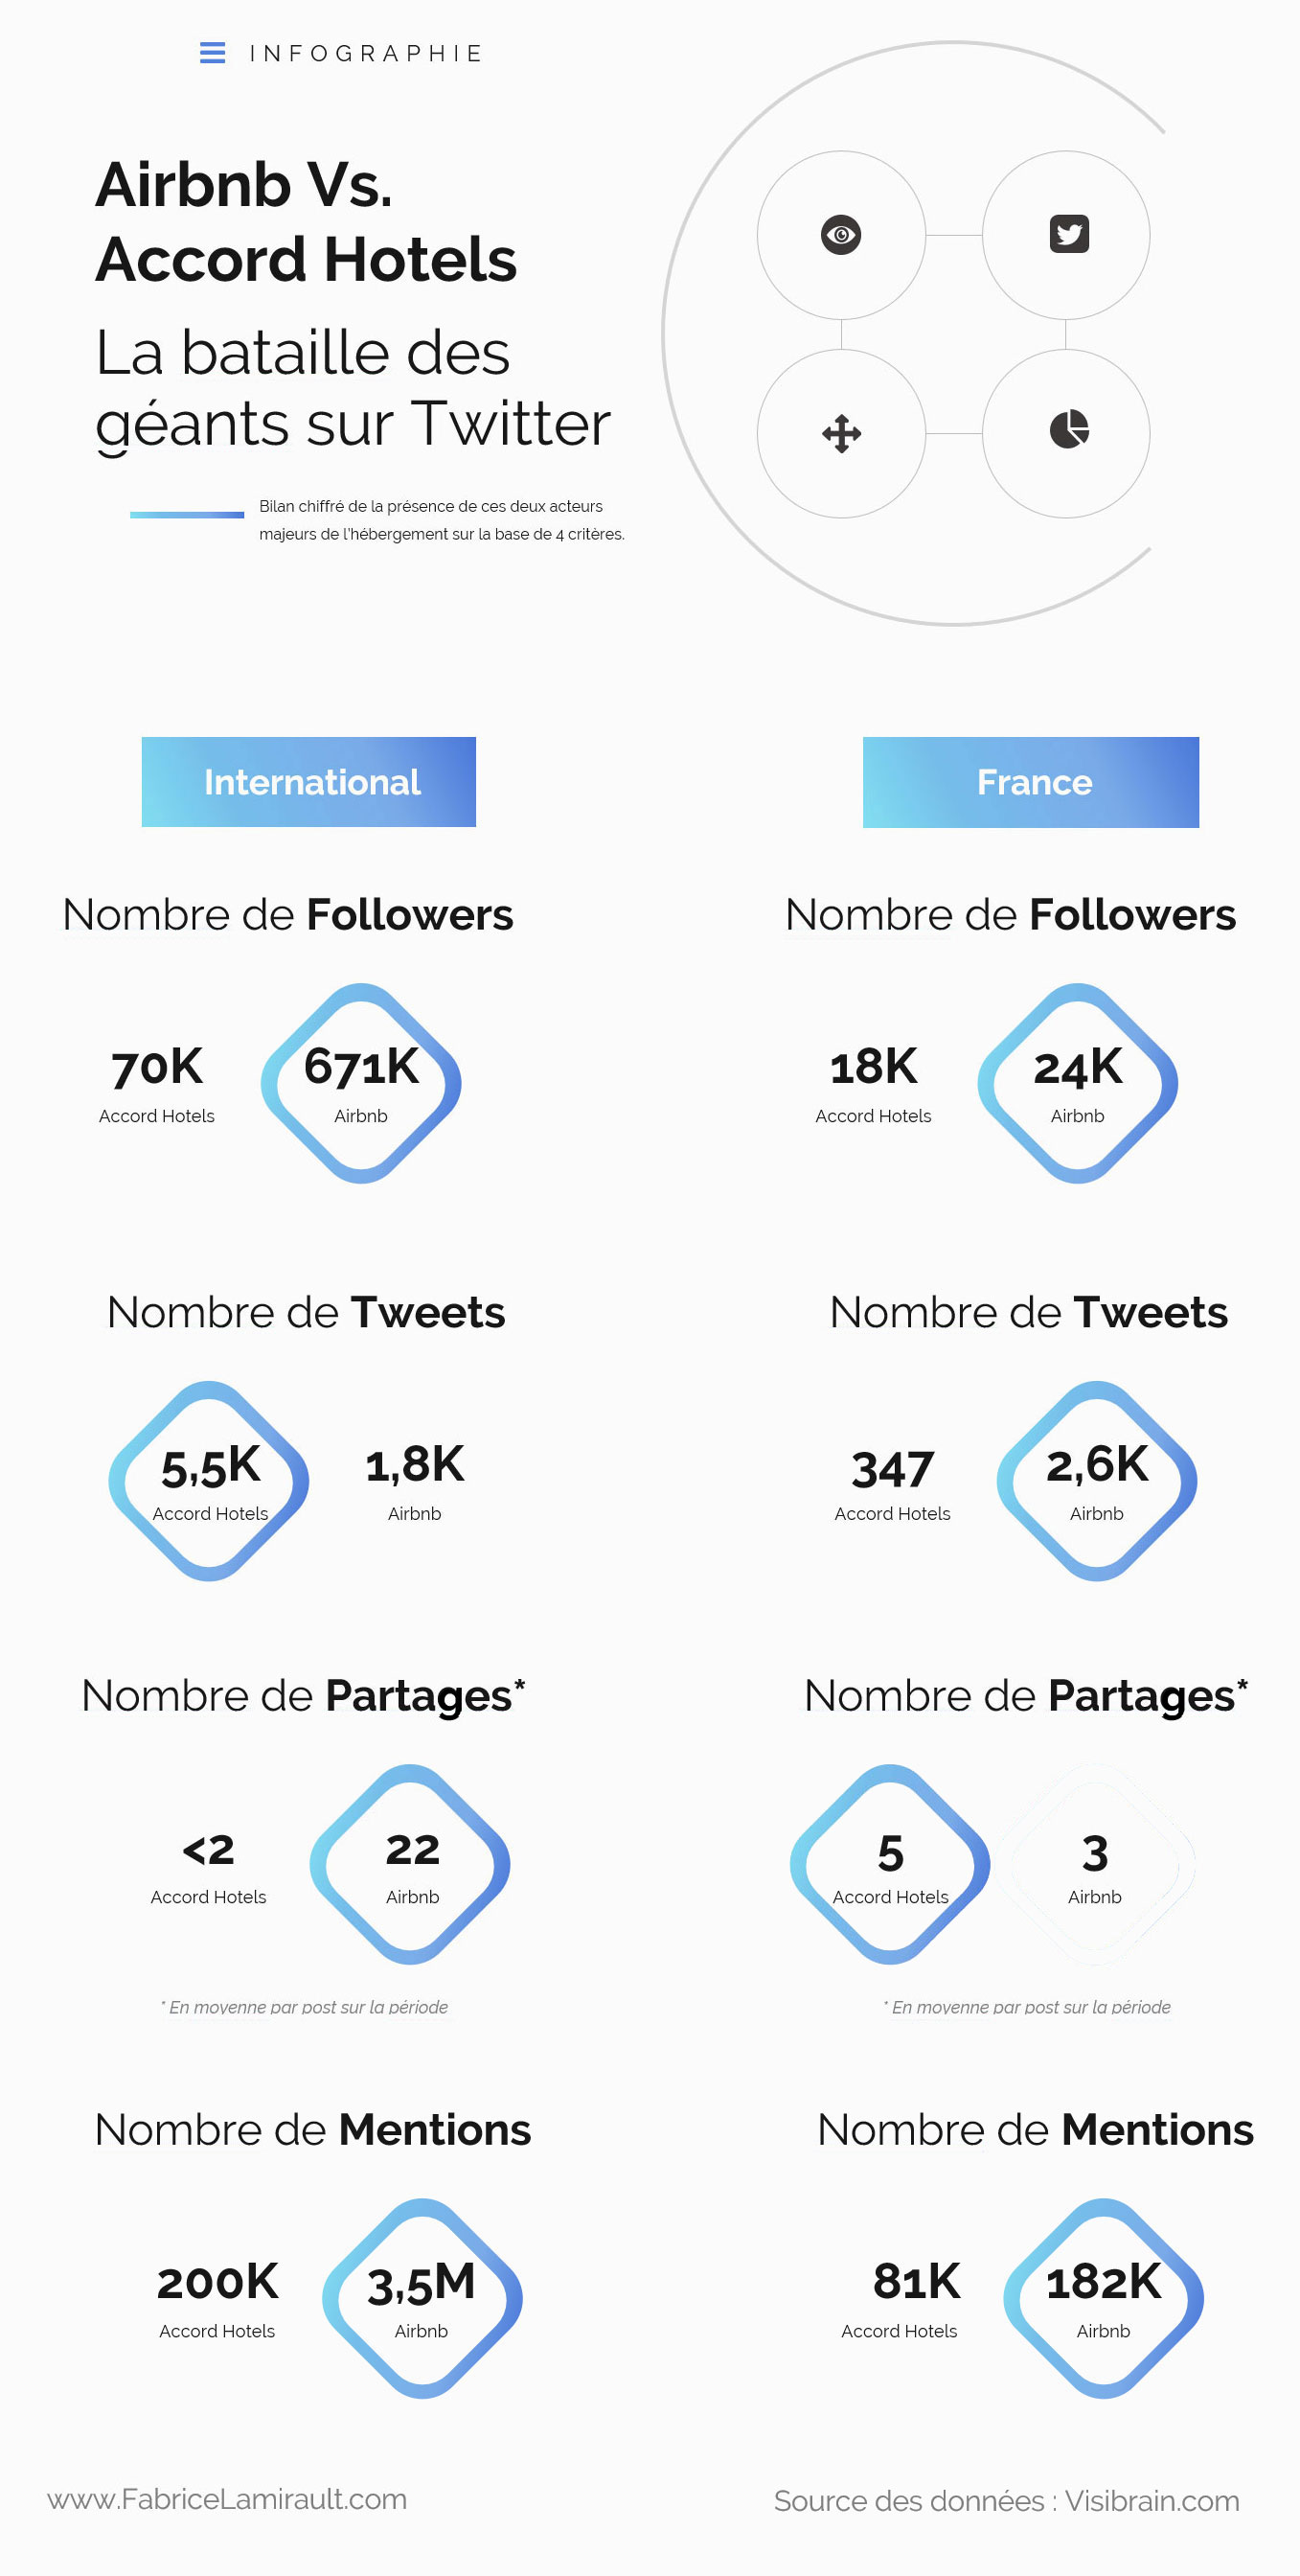 infographie twitter airbnb accor hotels visibrain